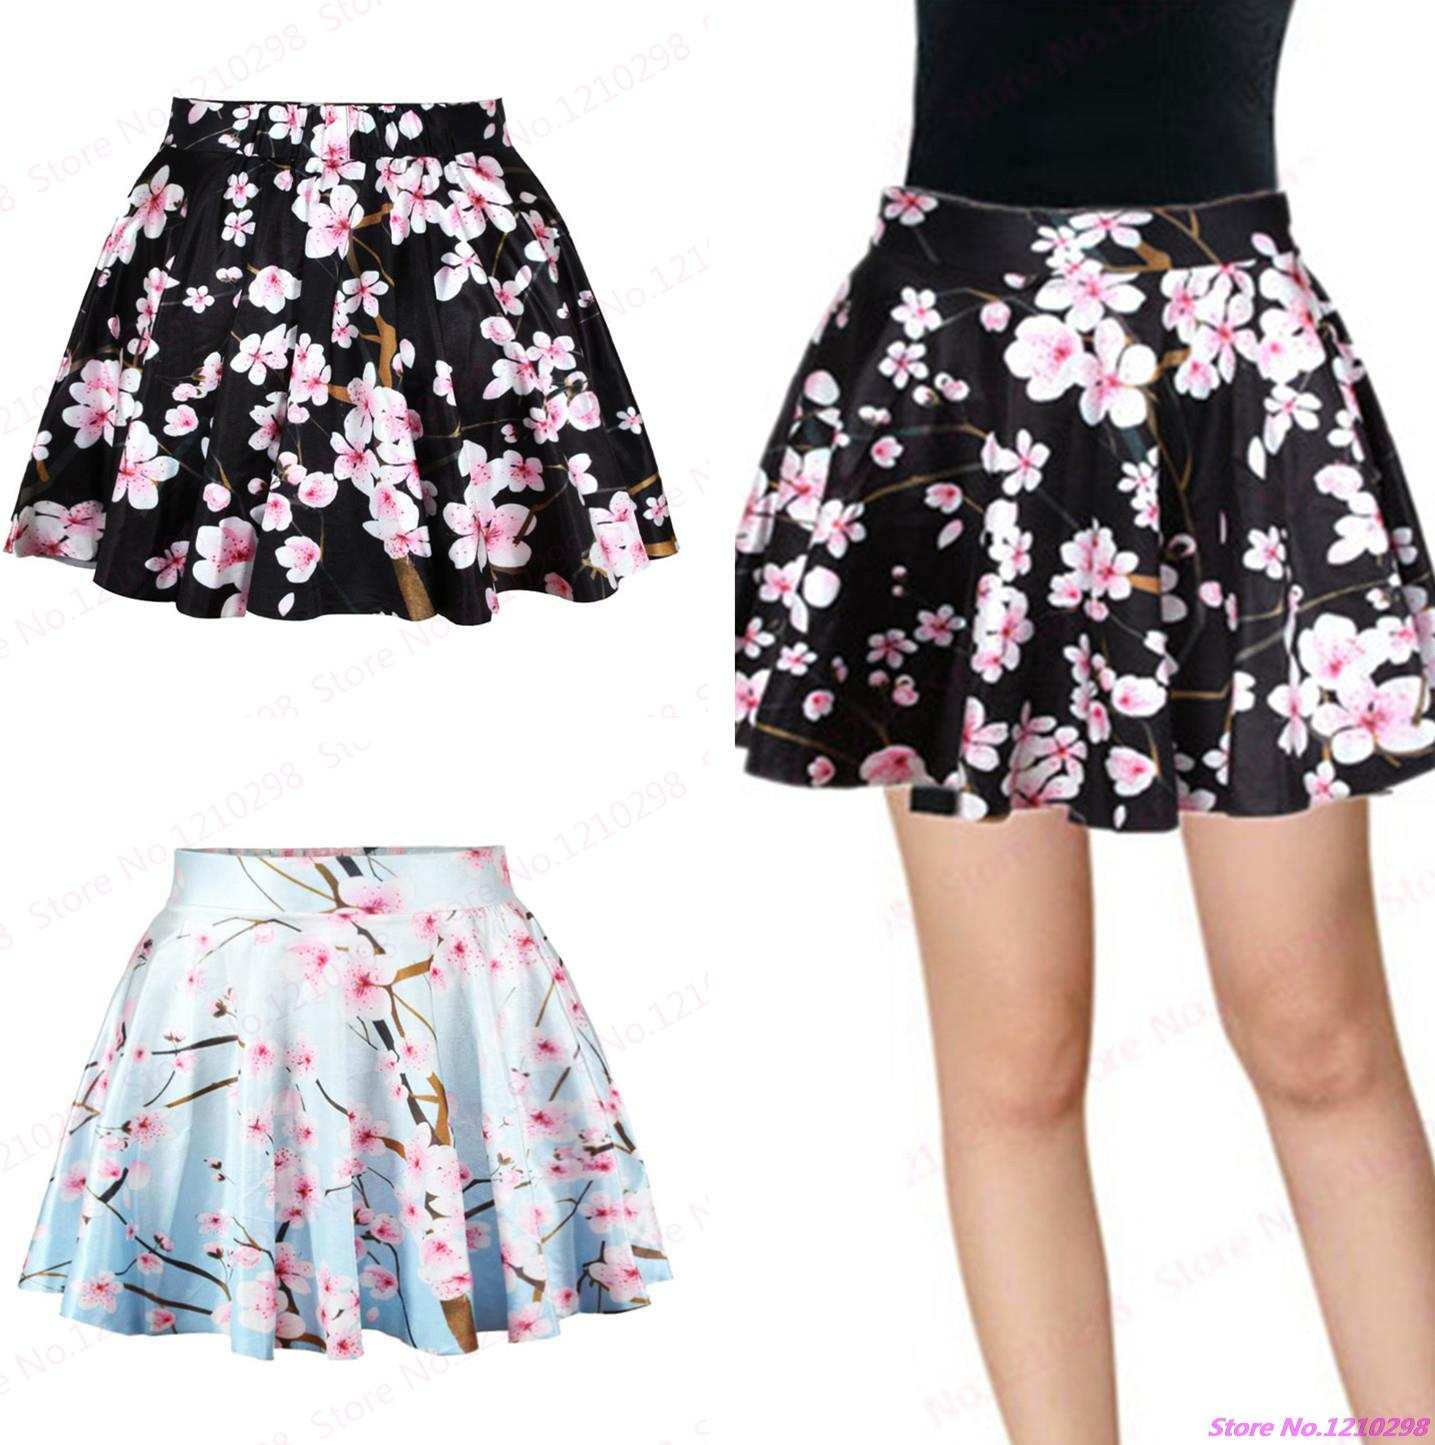 Printed Peach Blossom Short Skirts High Waist Ball Gown Miniskirt Clothing Sport font b Kilts b